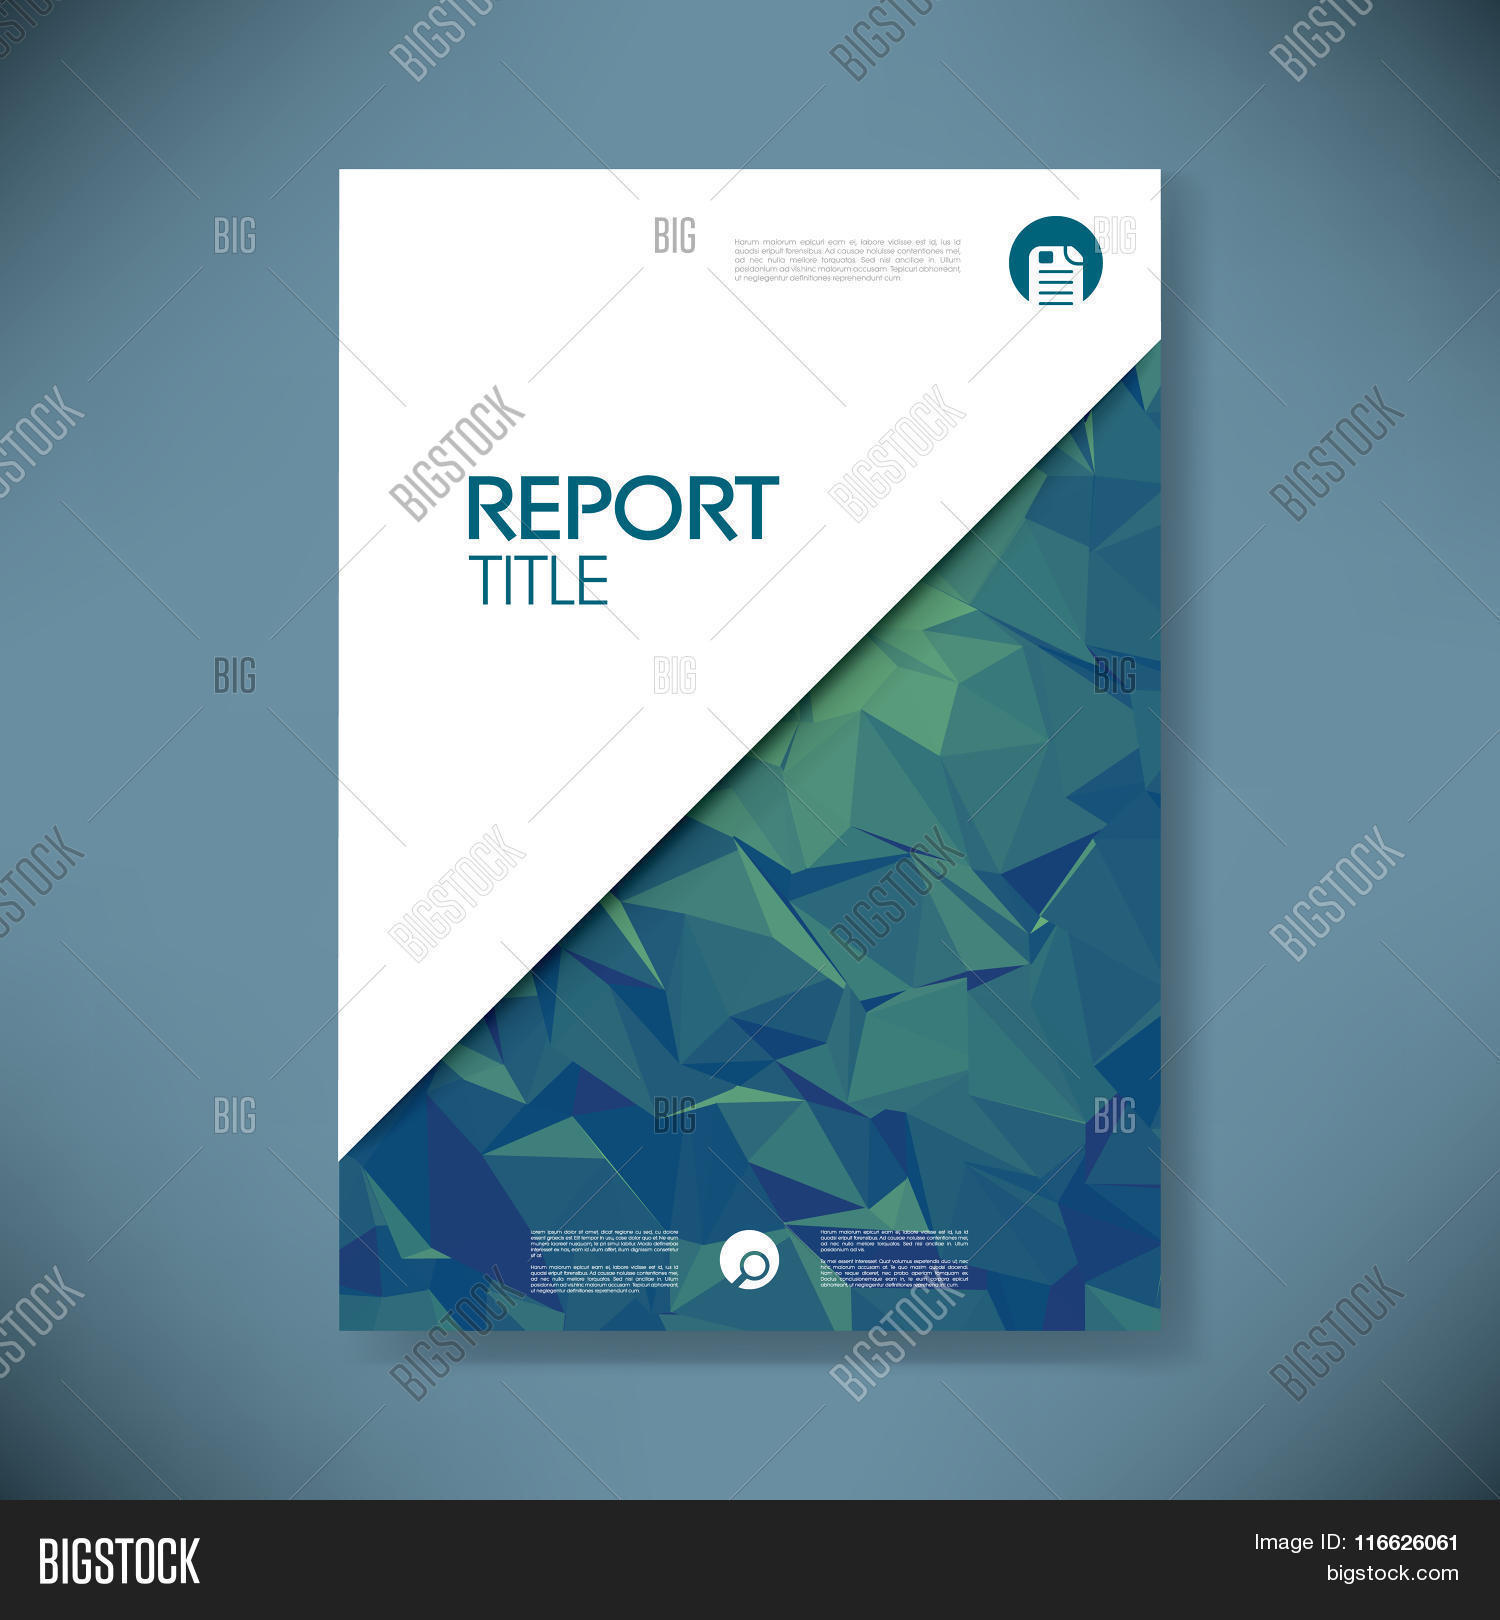 report cover page template word report cover page template word makemoney alex tk